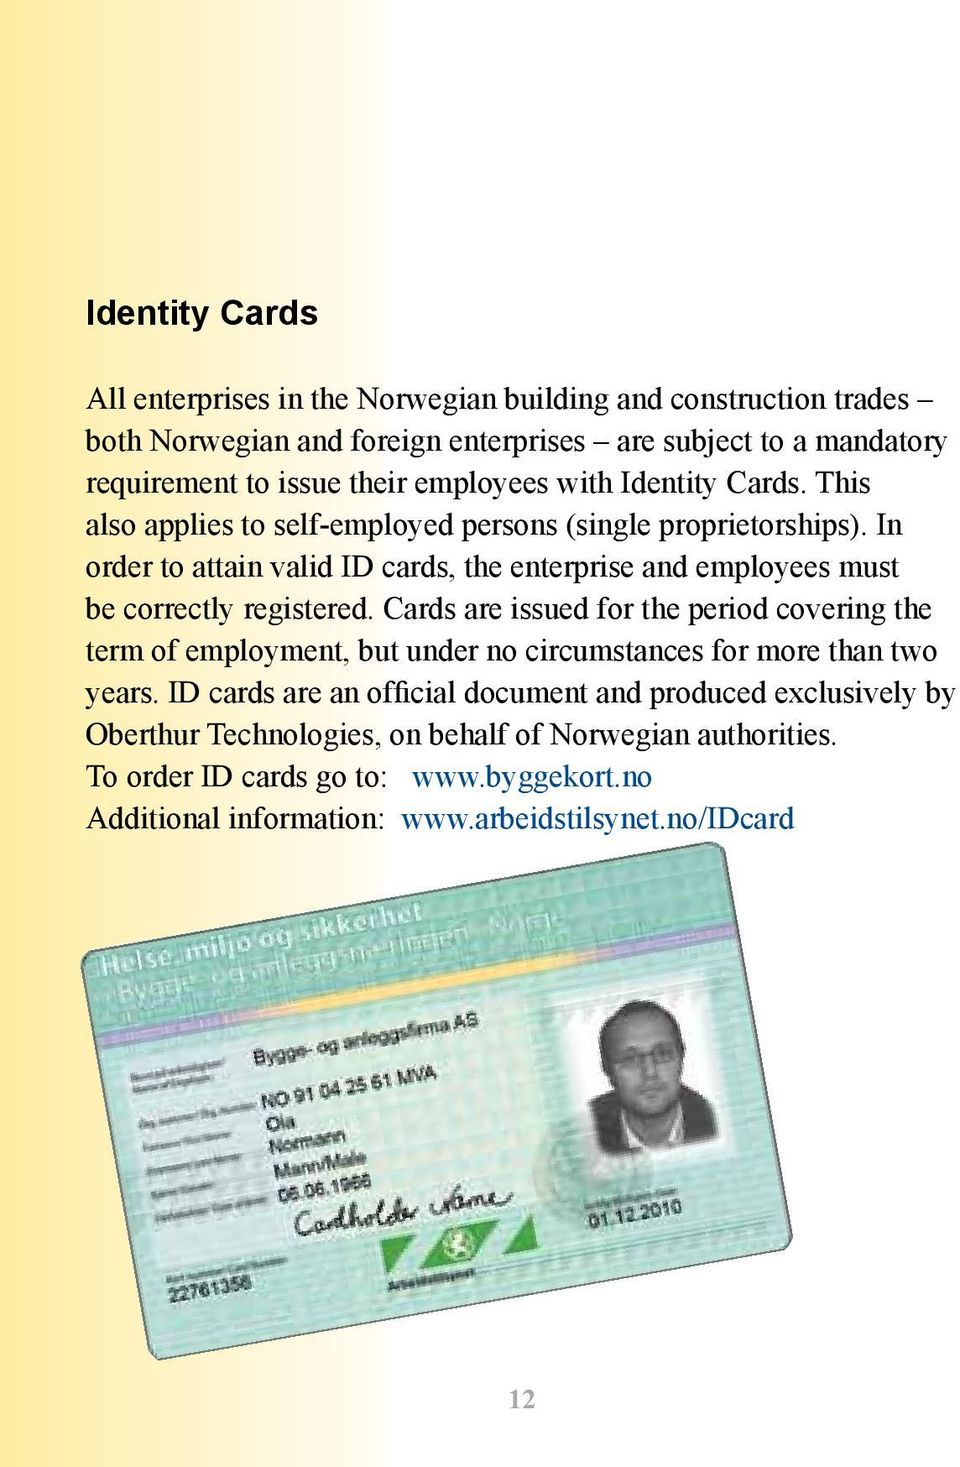 In order to attain valid ID cards, the enterprise and employees must be correctly registered.